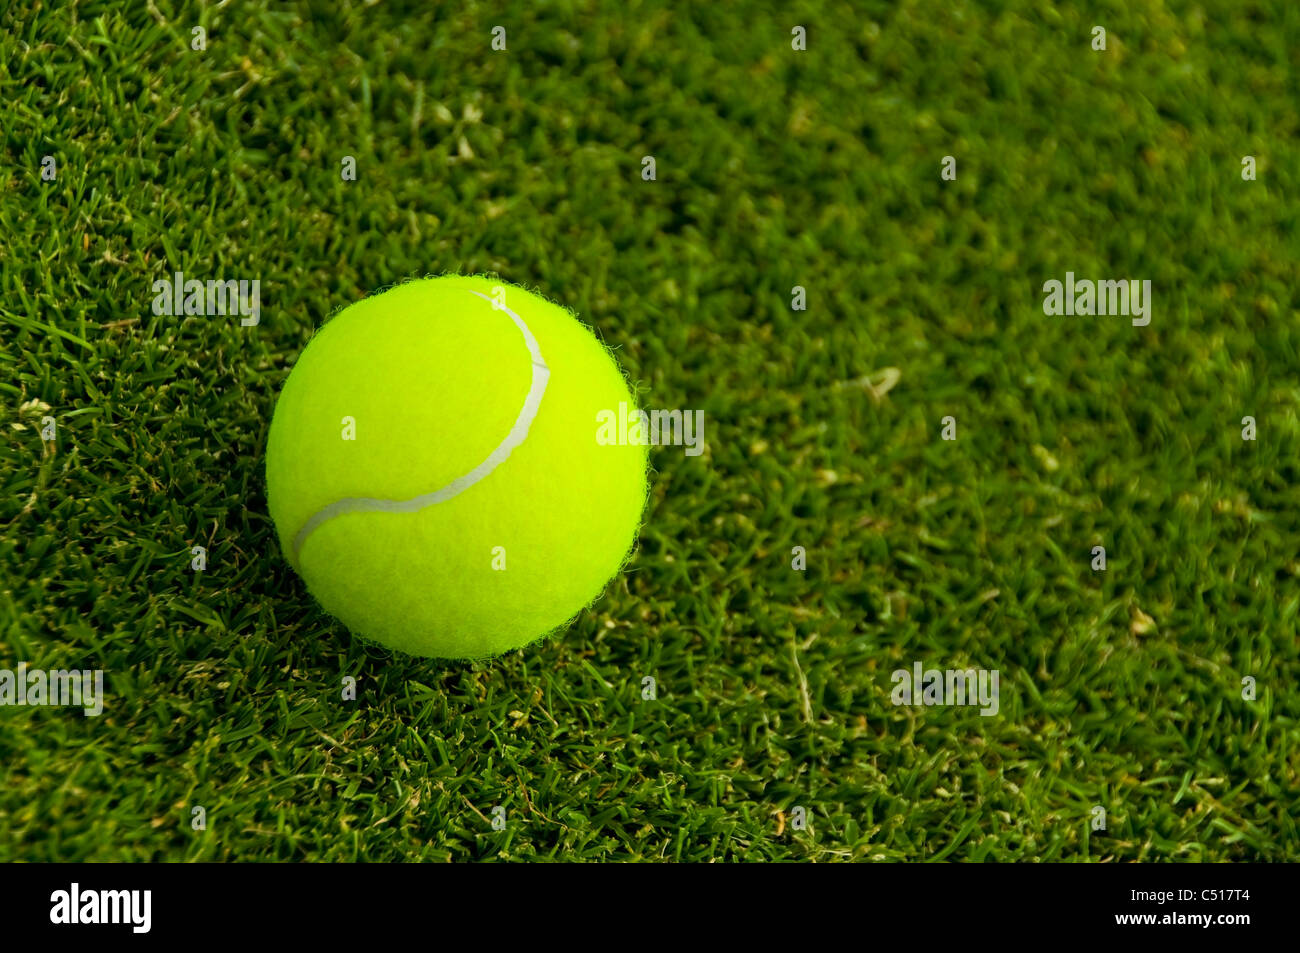 A tennis ball on a lawn court - Stock Image